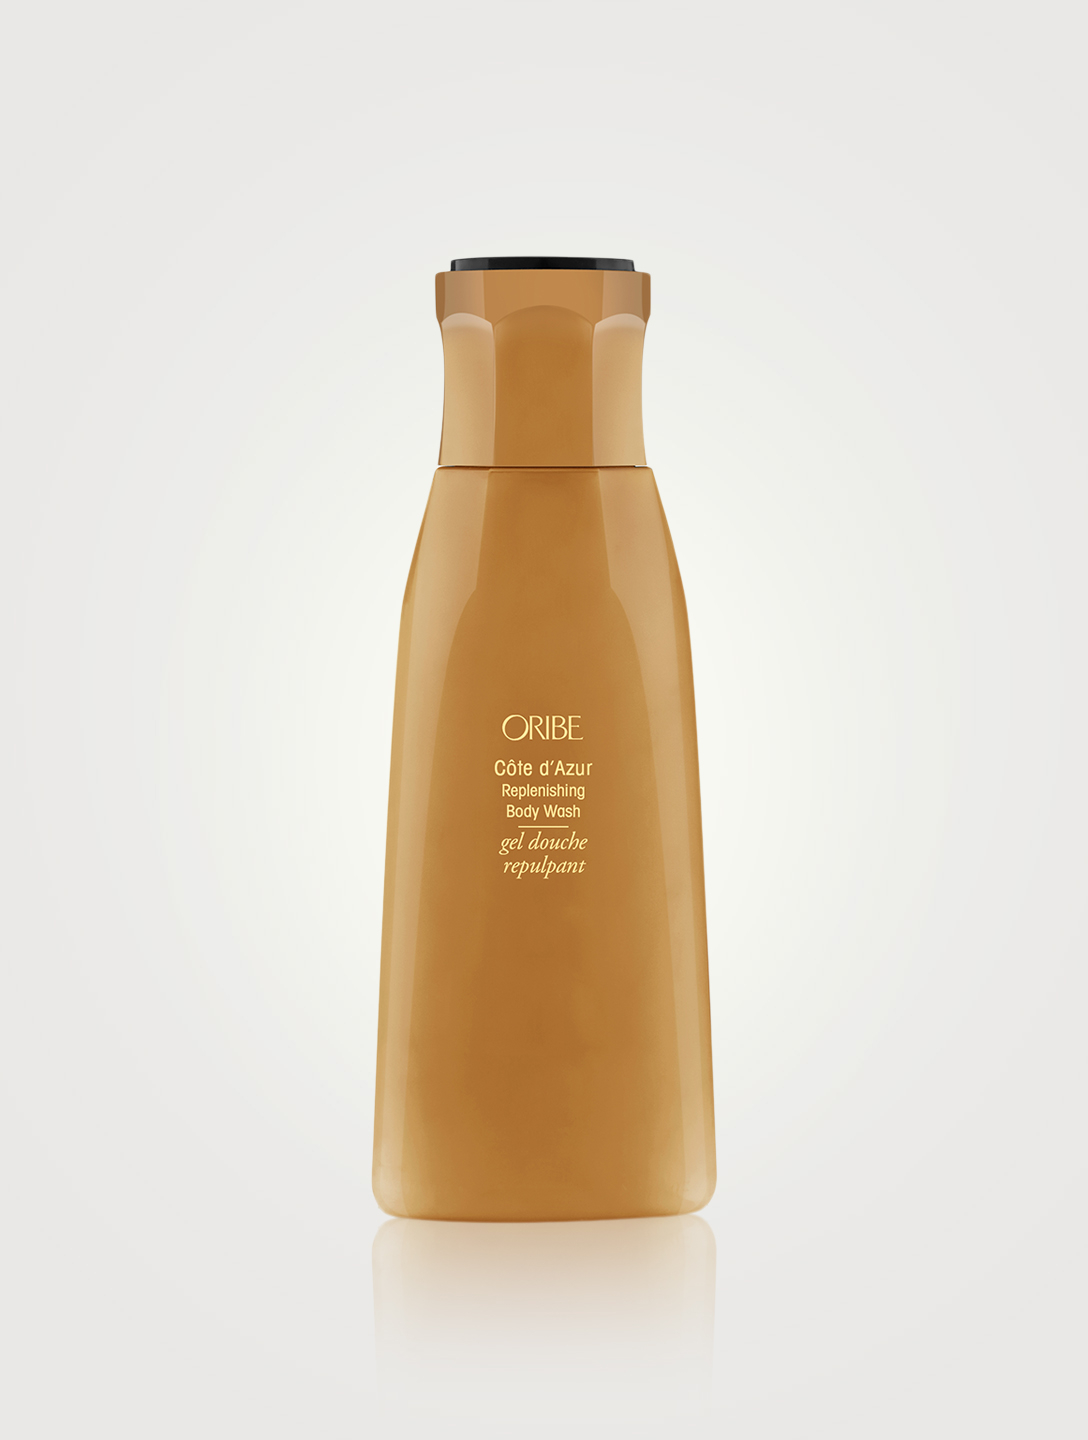 ORIBE Côte d'Azur Replenishing Body Wash Beauty